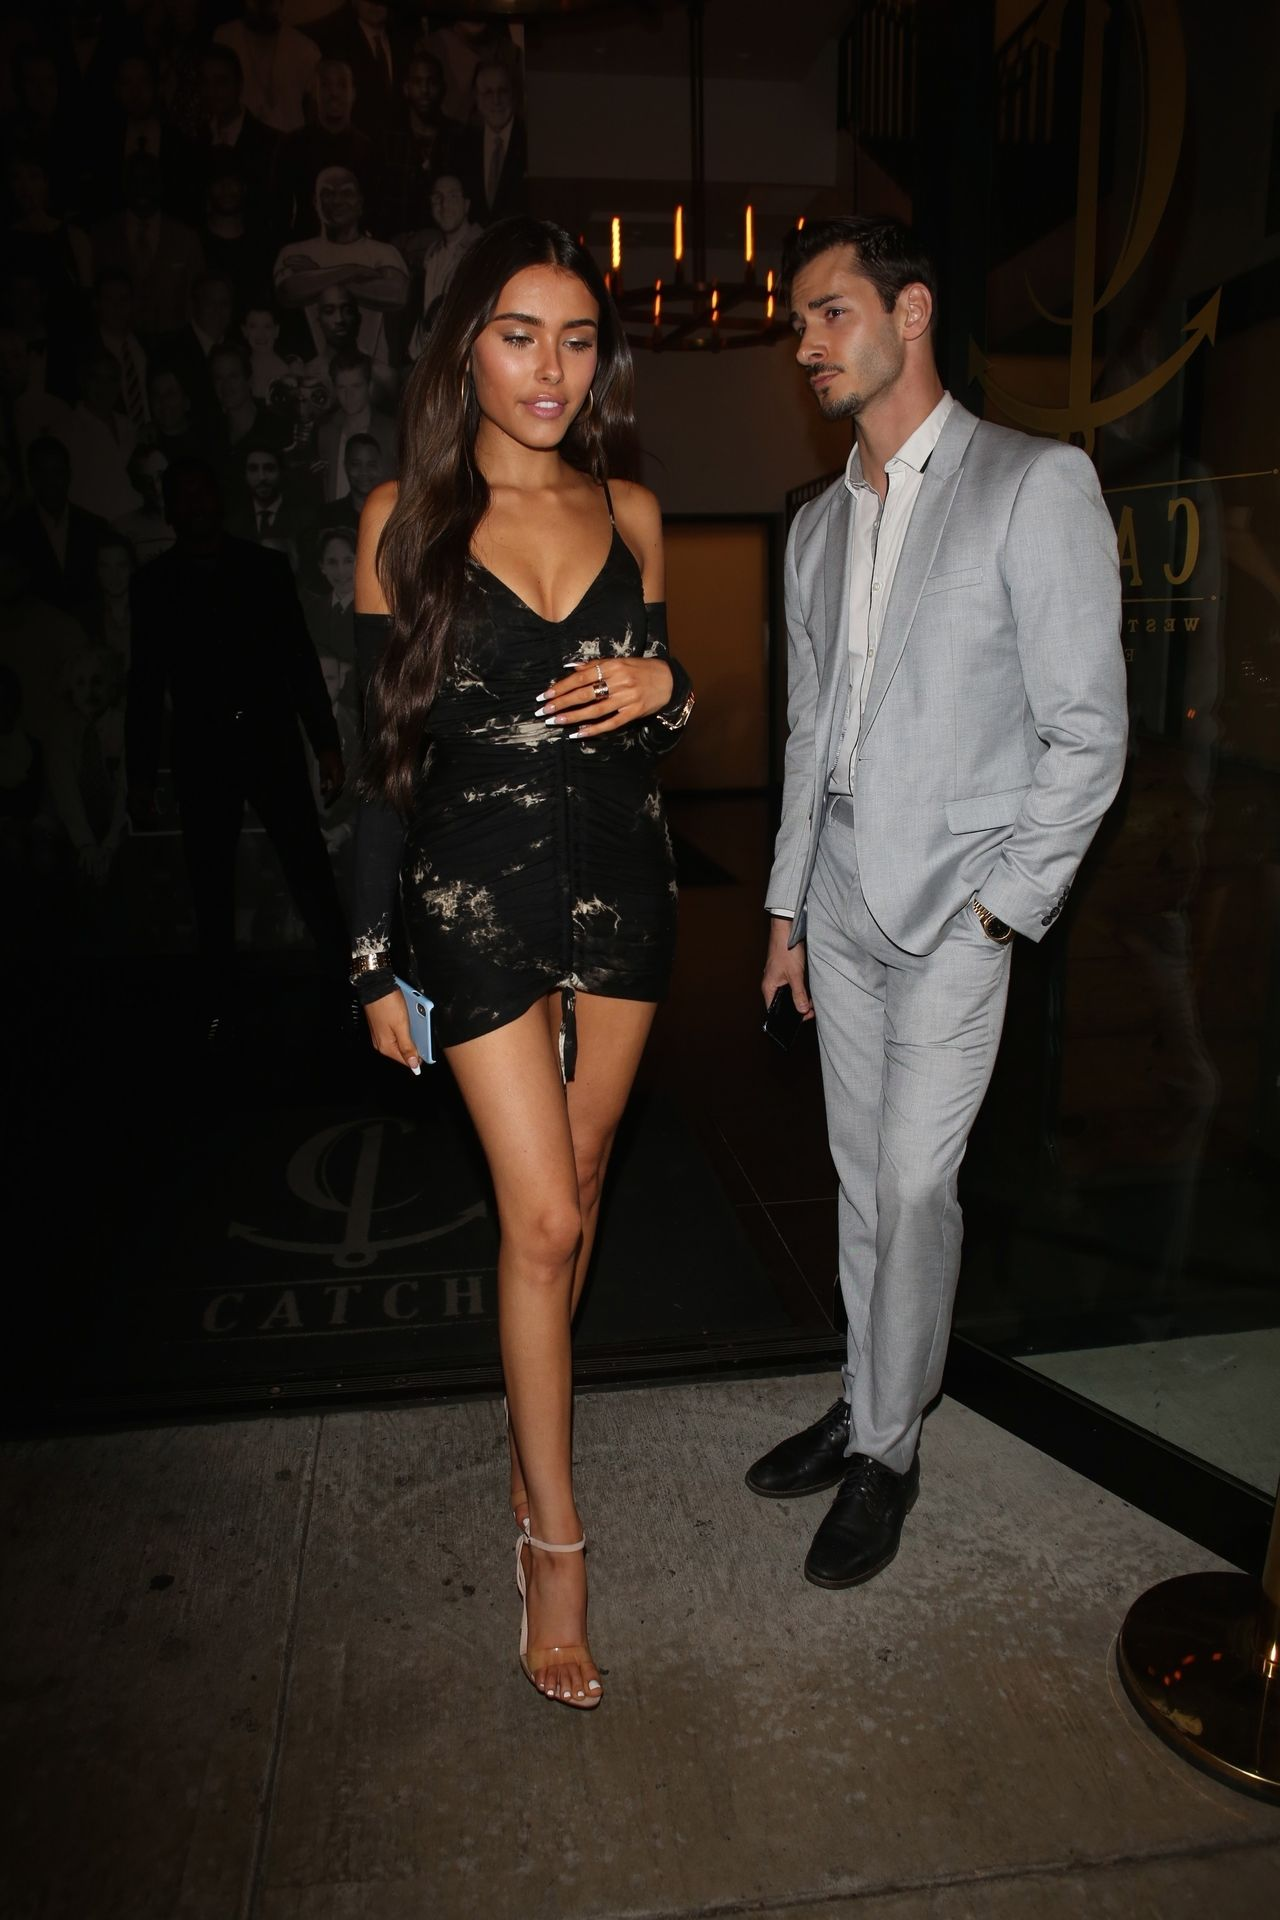 Madison Beer Stuns In Black At Catch La 0045